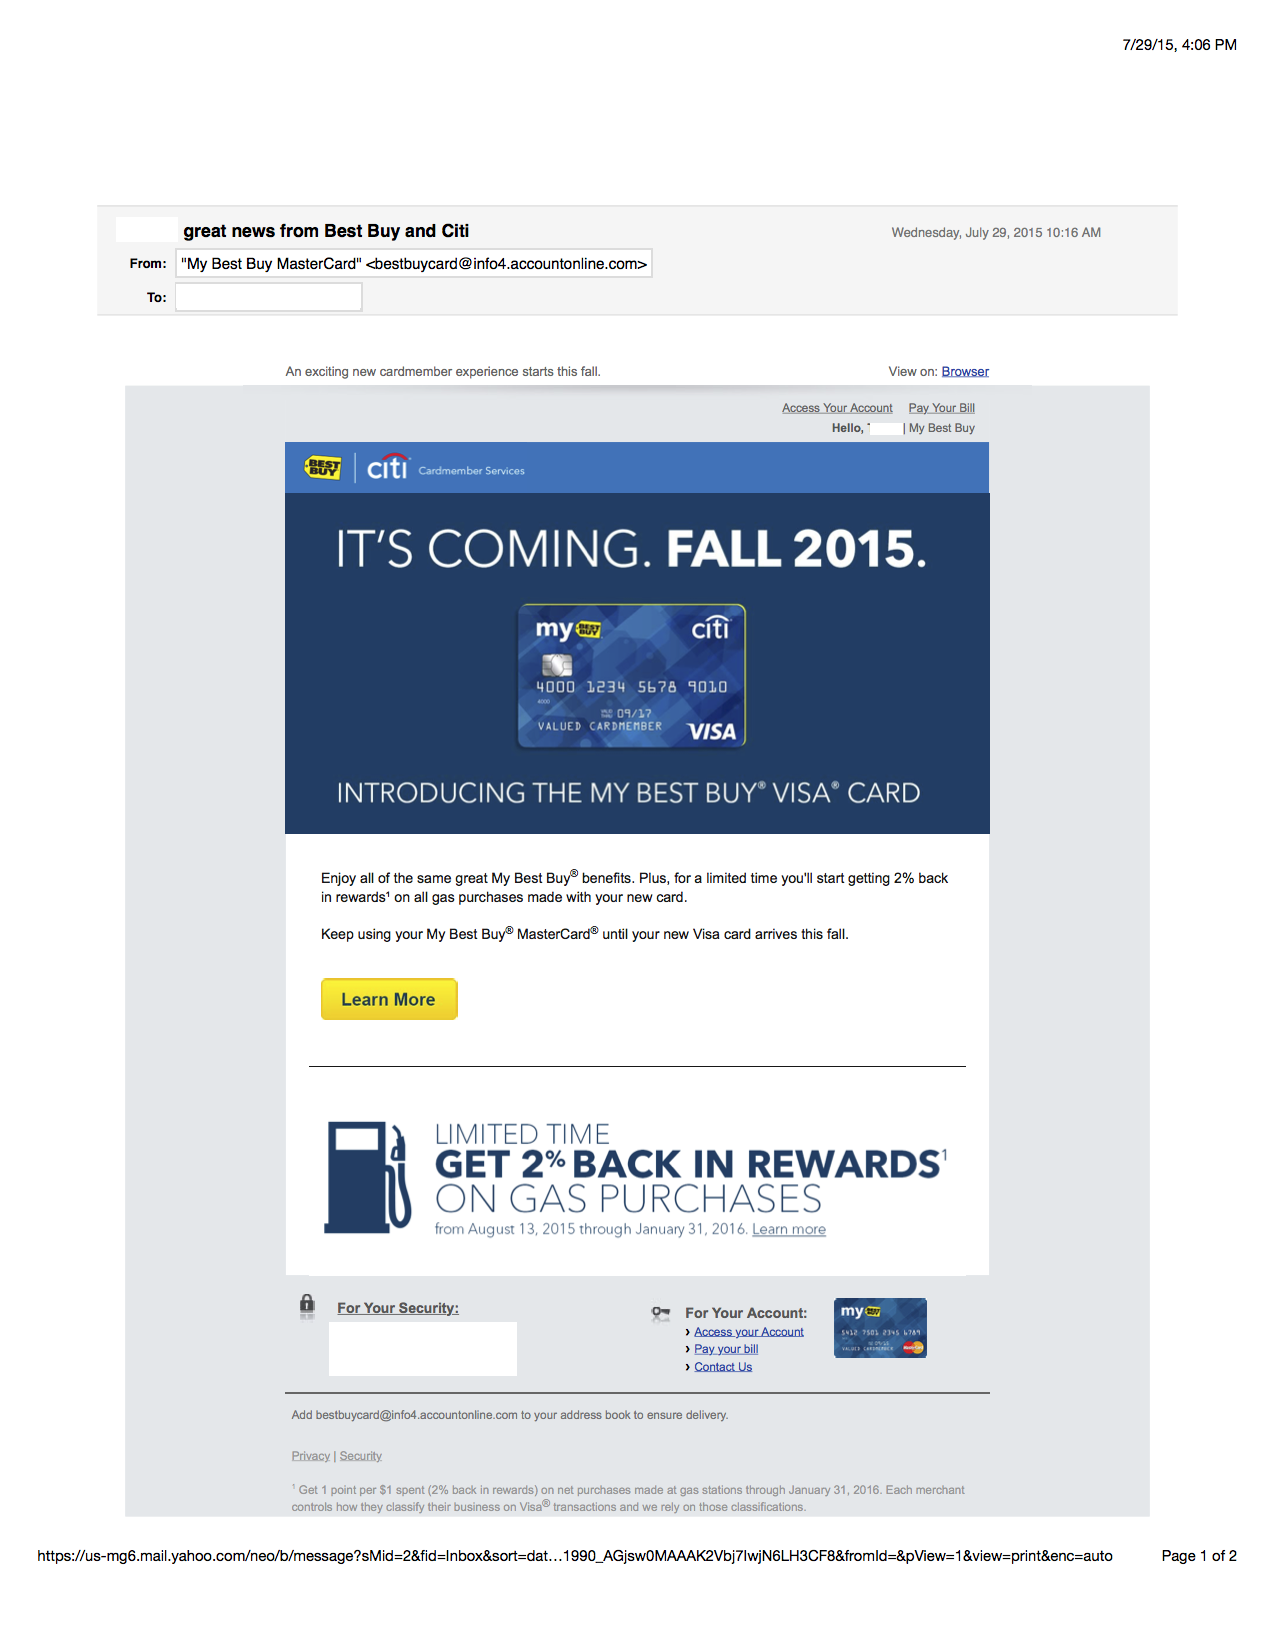 New Best Buy Credit Card System